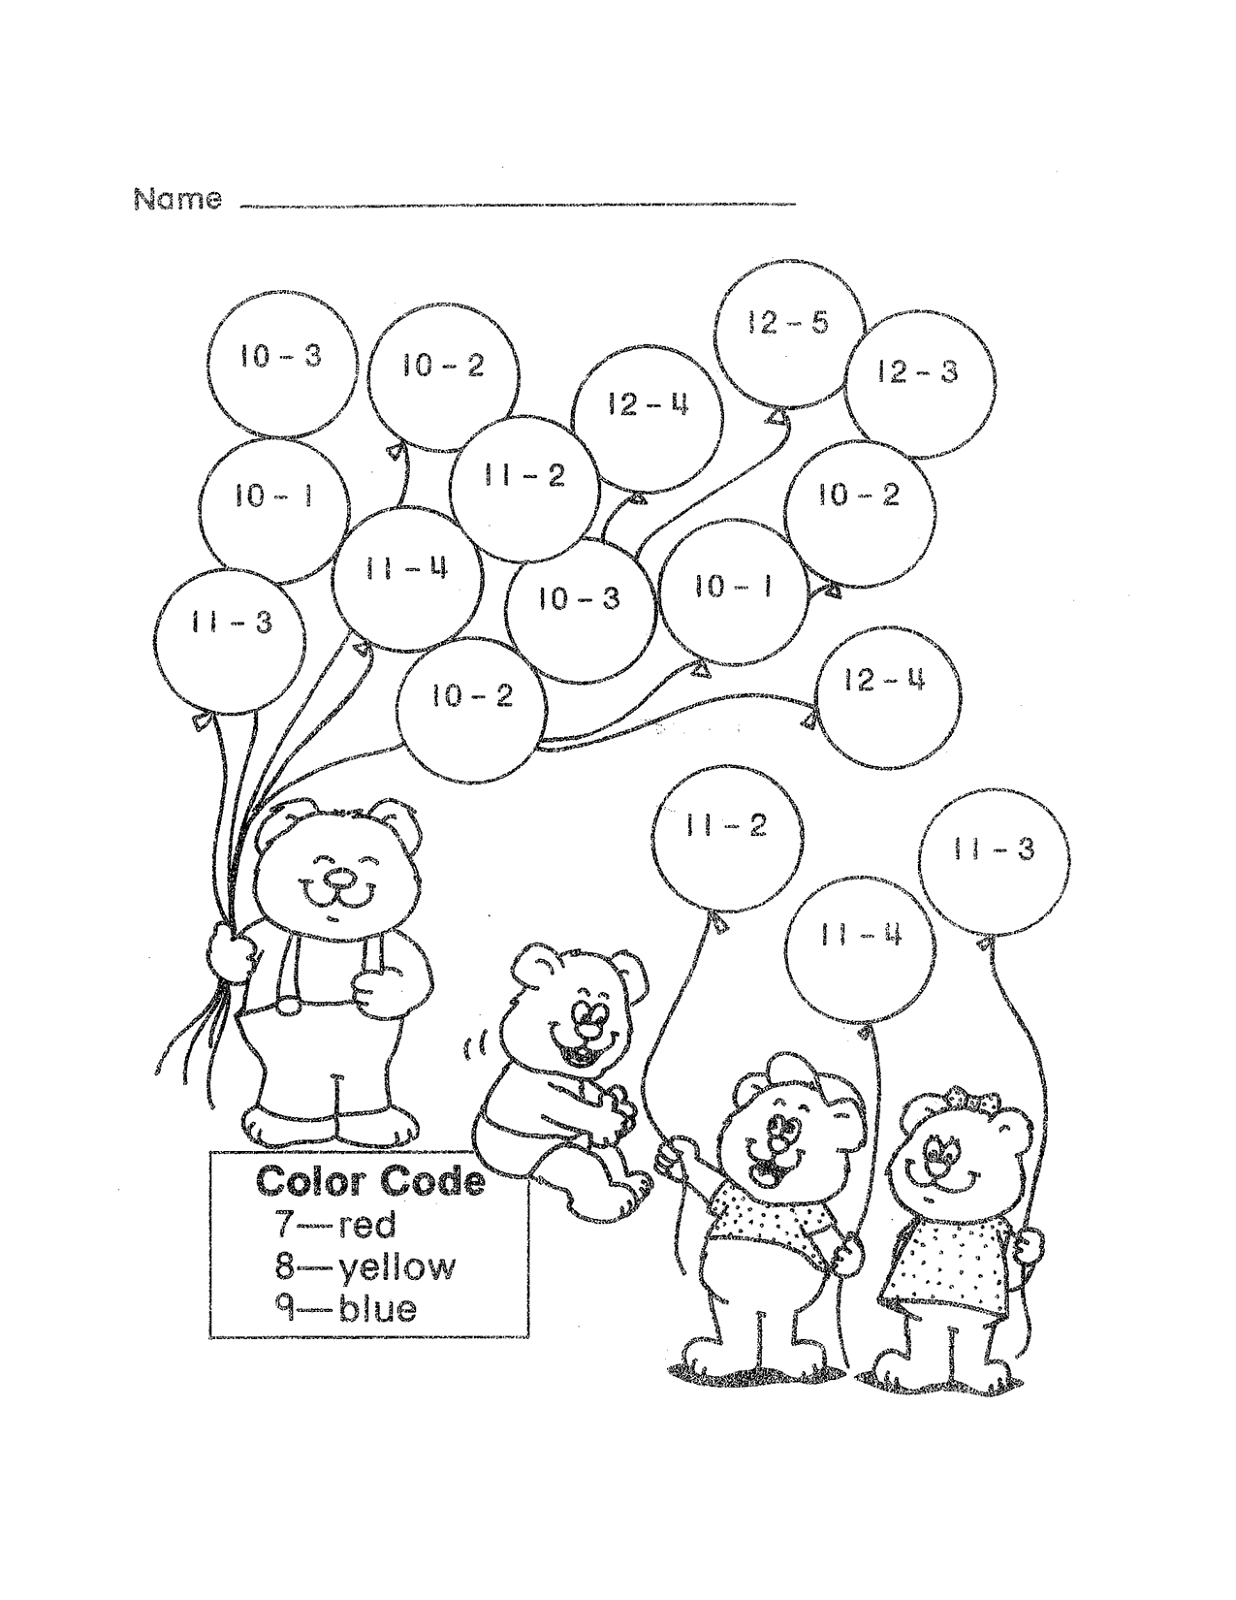 Fun Math Coloring Worksheets For Students Educative Printable Fun Math Worksheets Free Math Worksheets Kindergarten Math Worksheets [ 1600 x 1236 Pixel ]